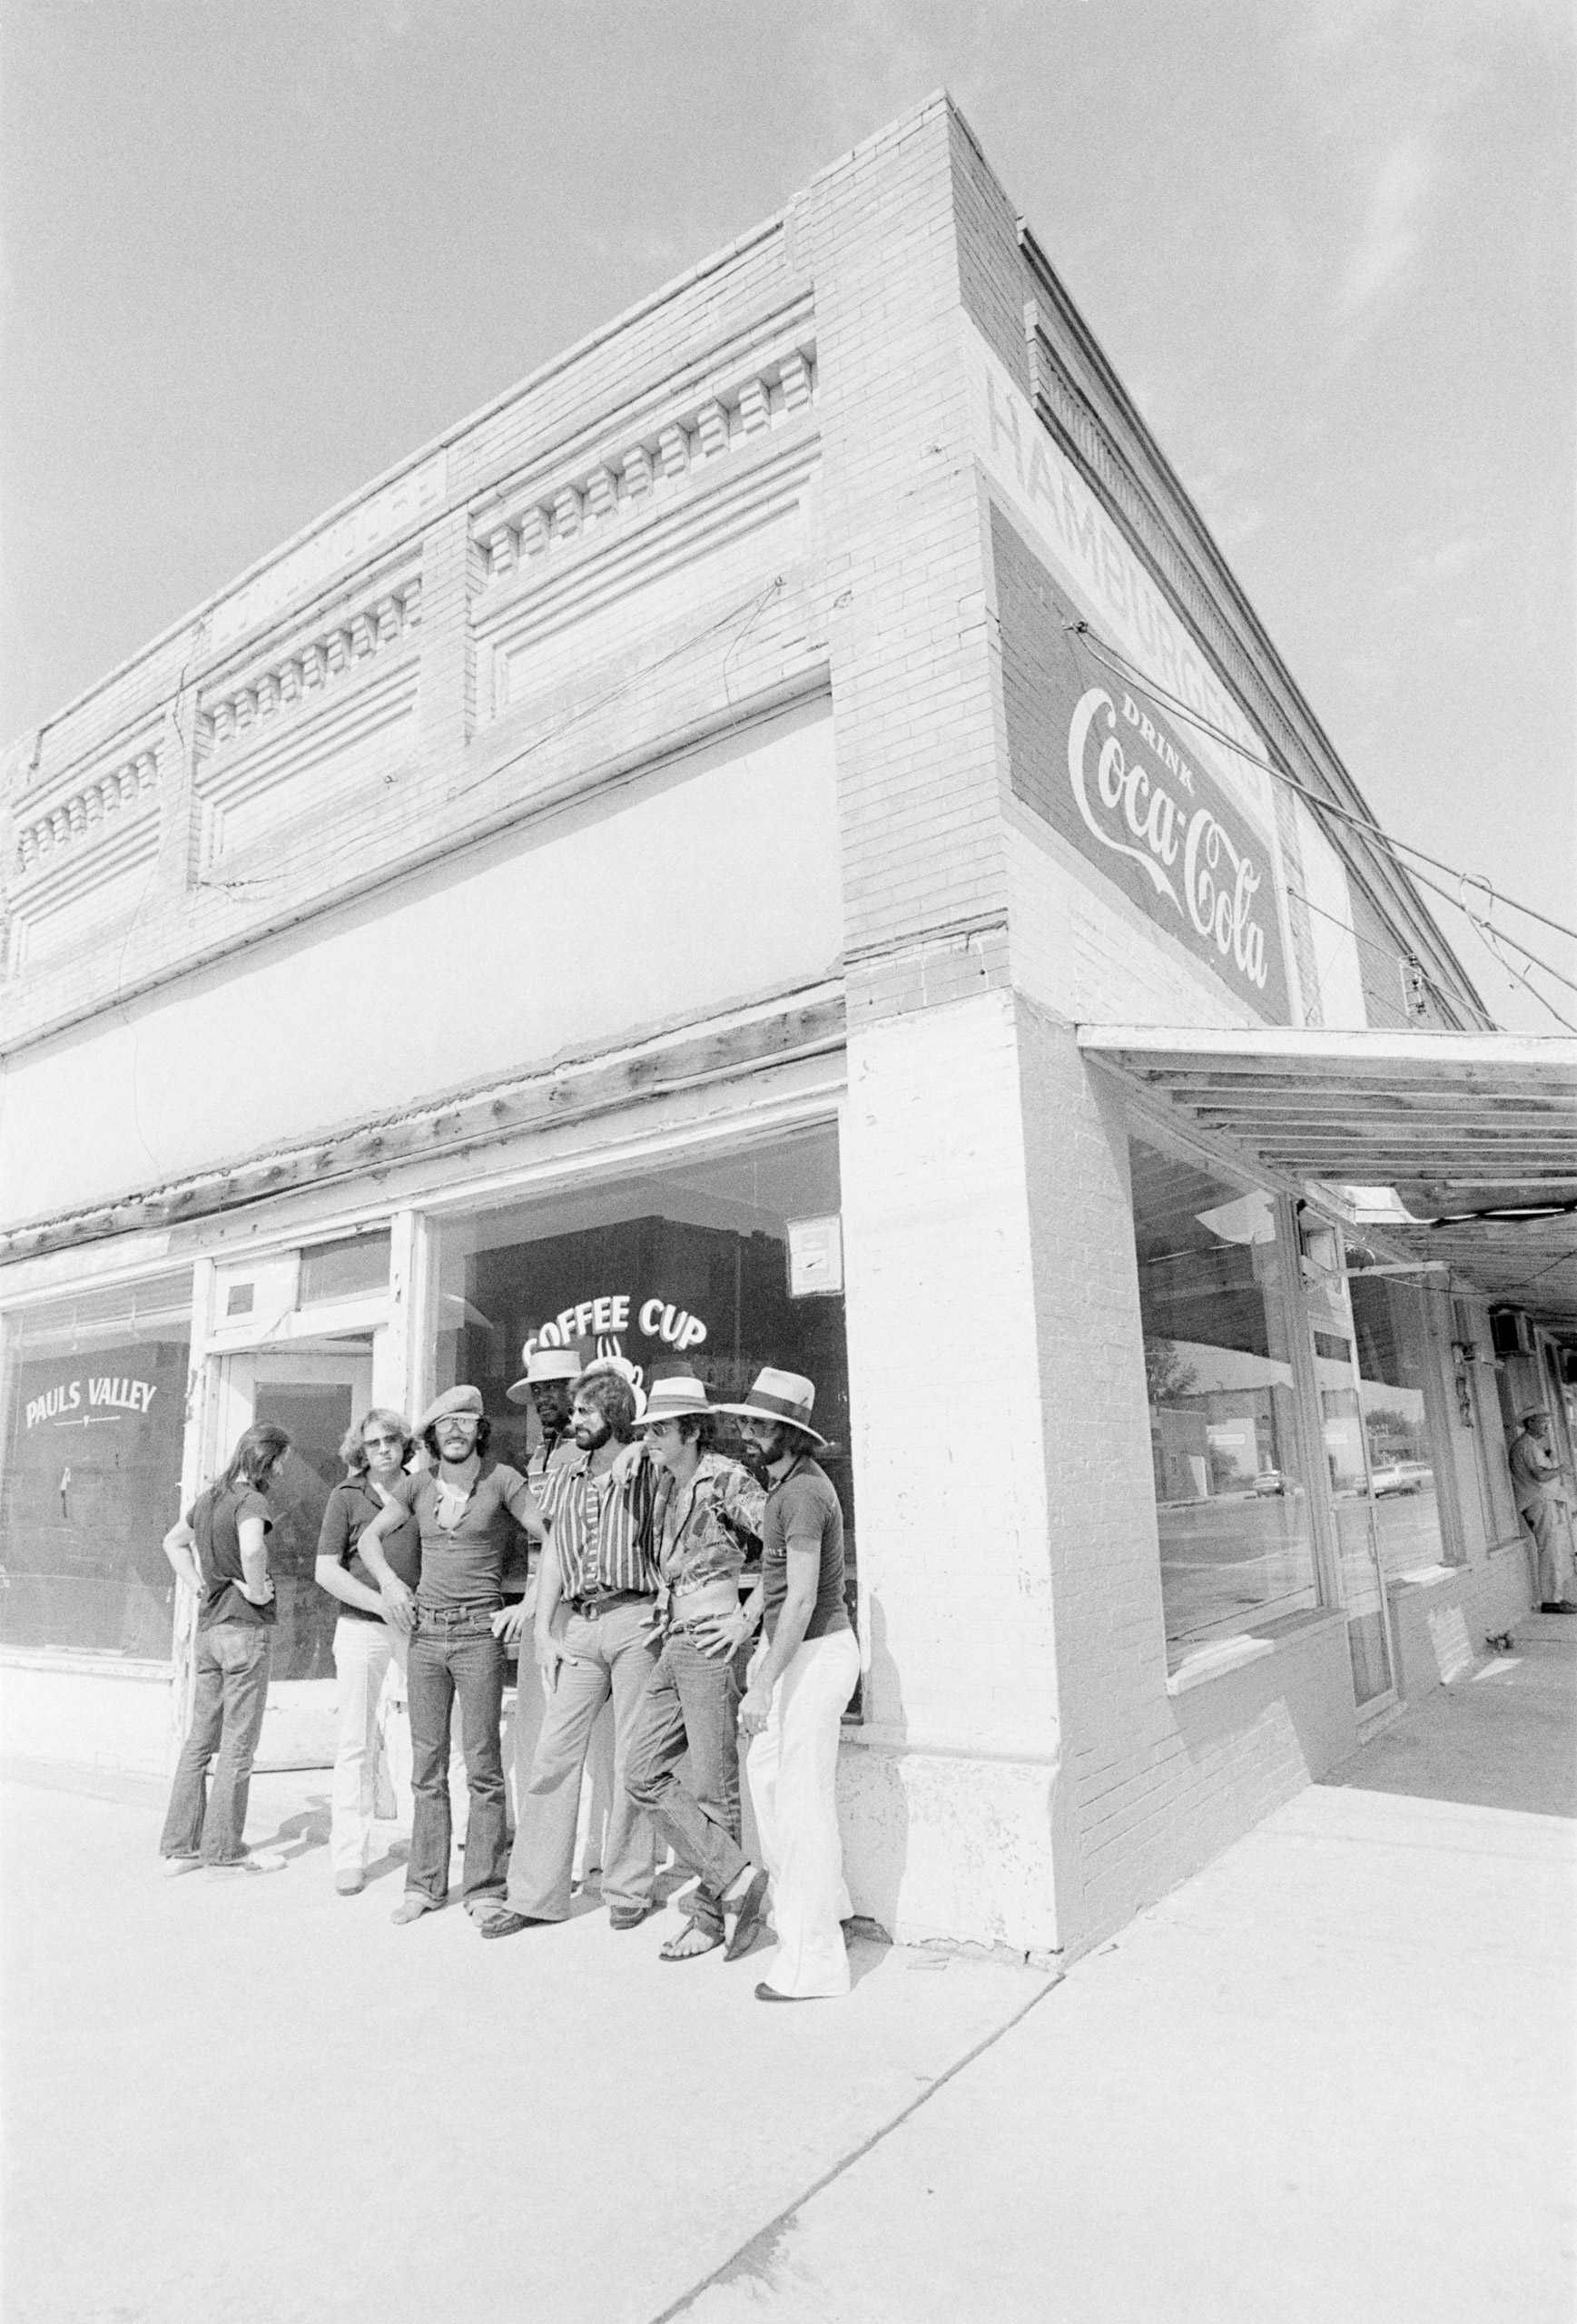 Bruce Springsteen and the E Street Band in front of the Coffee Cup Cafe in photographer Barbara Pyle's hometown of Pauls Valley, Oklahoma.